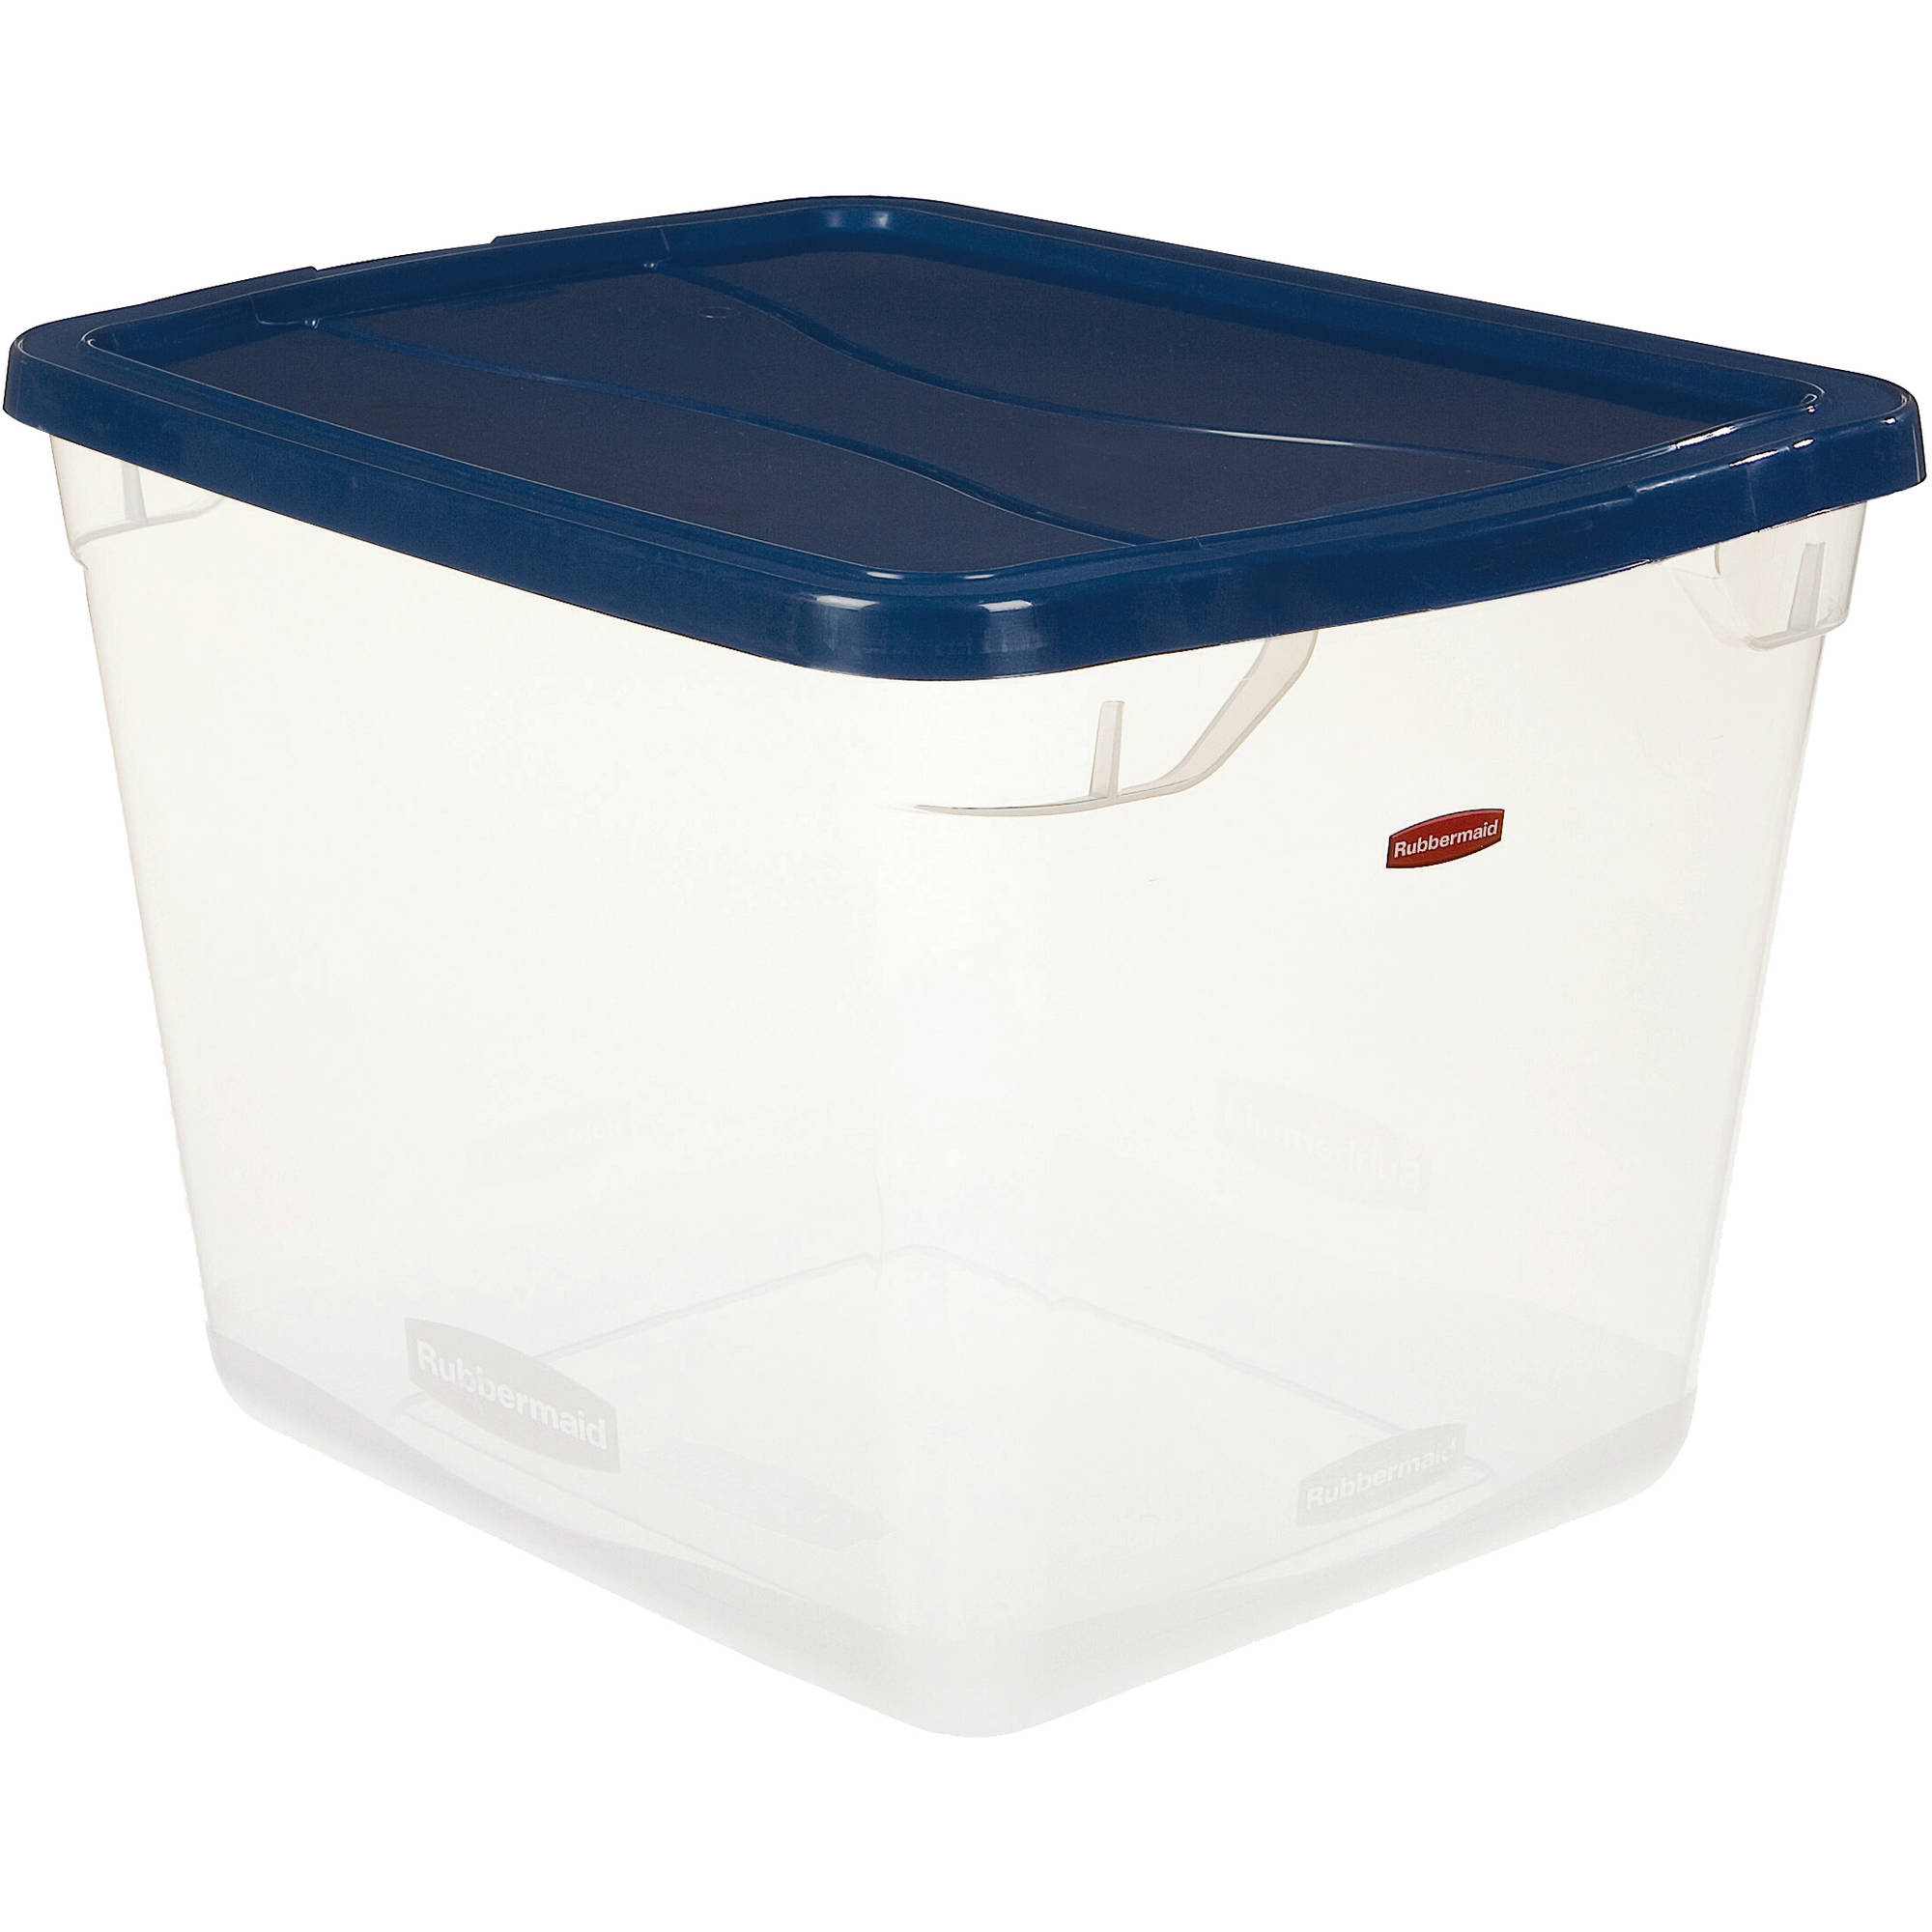 Rubbermaid 7.5-Gallon (30-Quart) Clever Store Container, Clear/Comfort Blue, Set of 8